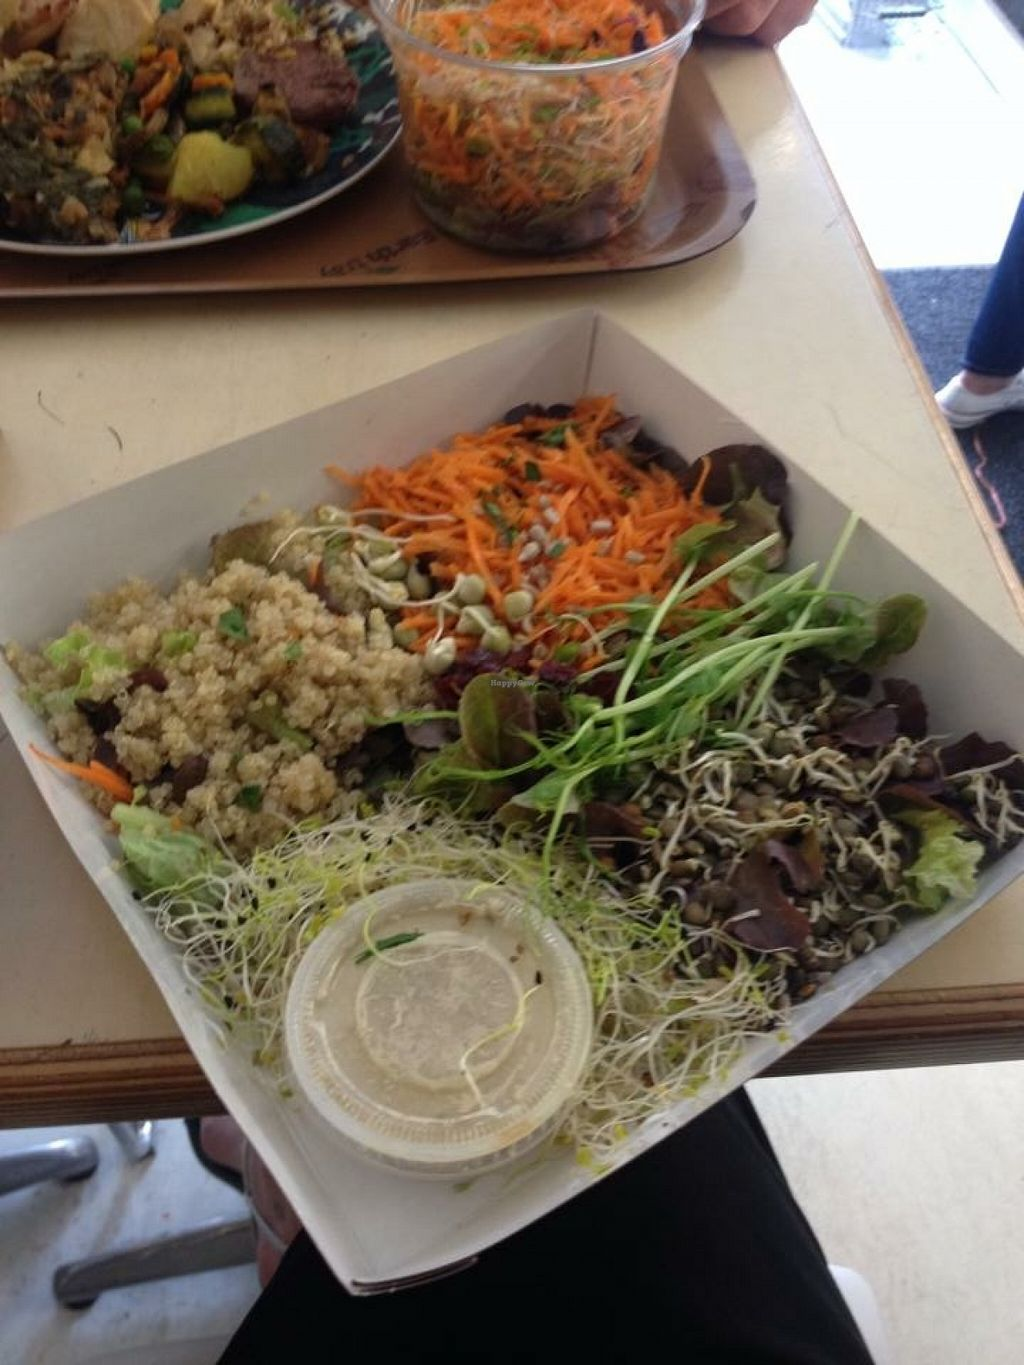 Photo of Le Bio d'Adam et Eve  by karolina.bujakova <br/>Delicious meals, especially salads and their dressings!  <br/> September 9, 2015  - <a href='/contact/abuse/image/31032/117185'>Report</a>